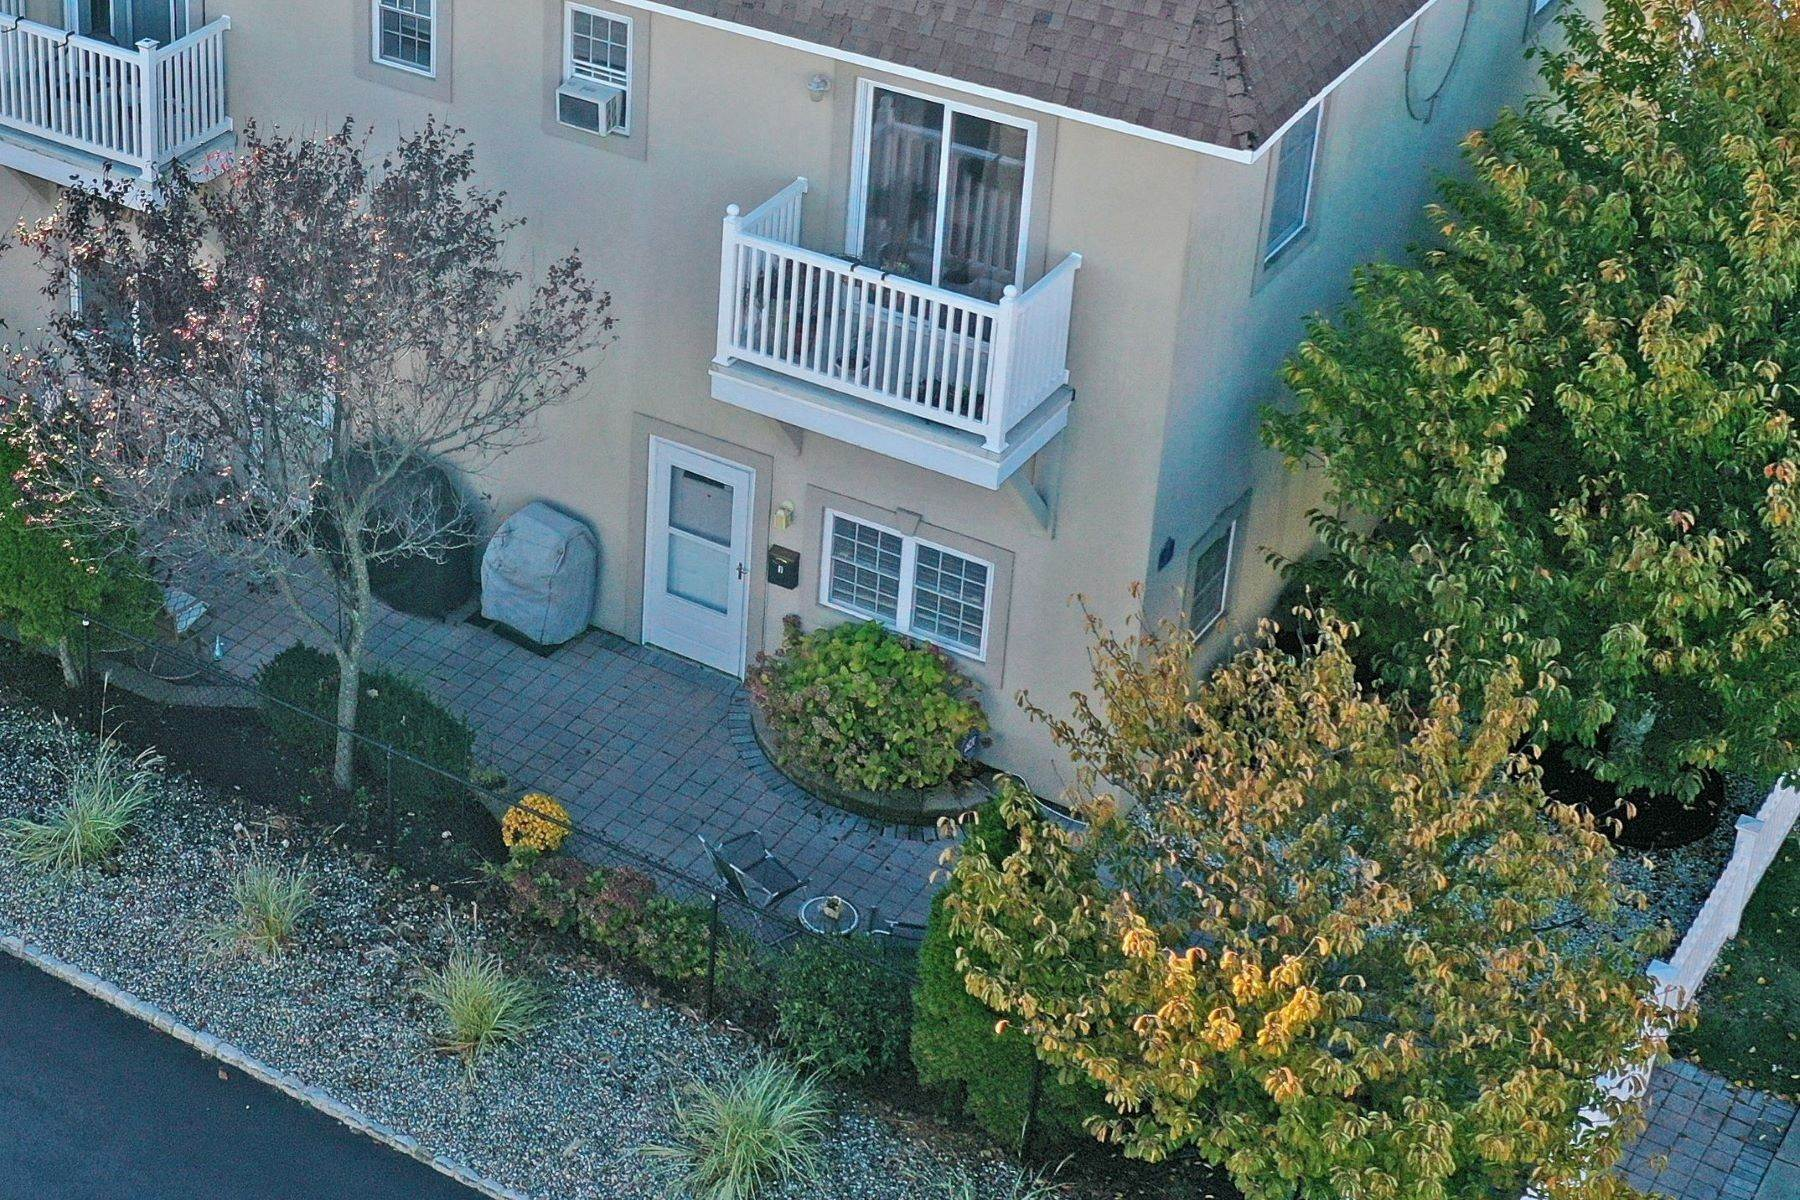 Property for Sale at Rare 3 Bedroom Townhome 315 Newark Avenue Unit 1 Bradley Beach, New Jersey 07720 United States